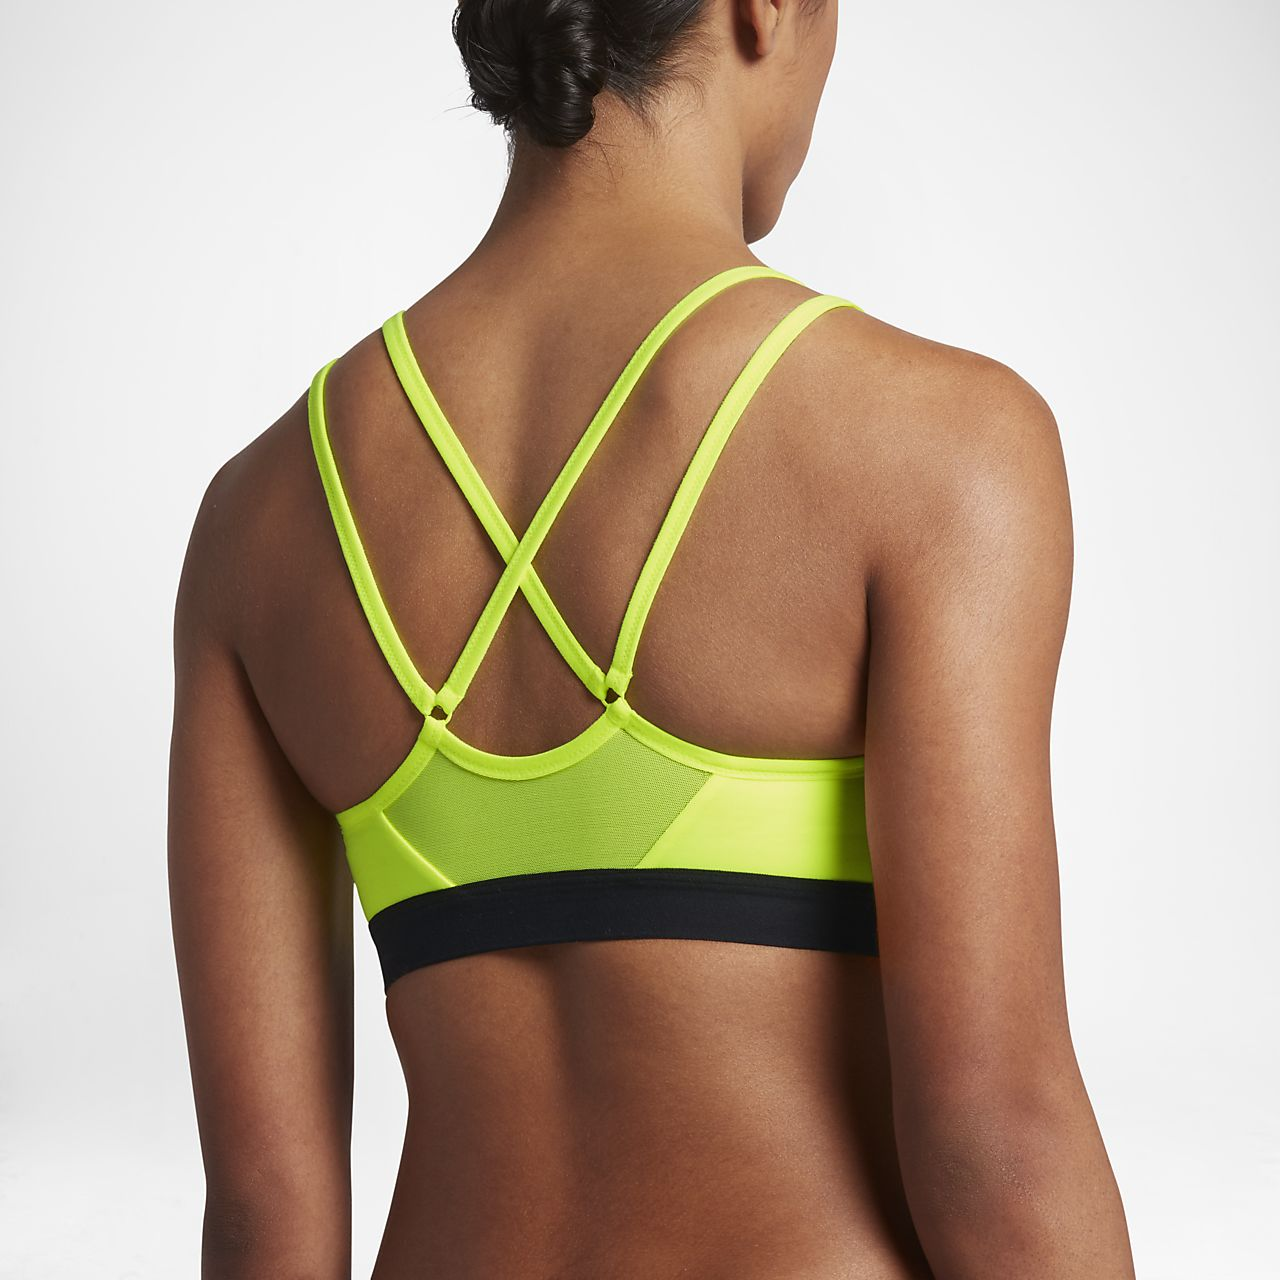 50c8109c0a48 Nike Indy Women s Light Support Sports Bra. Nike.com SG